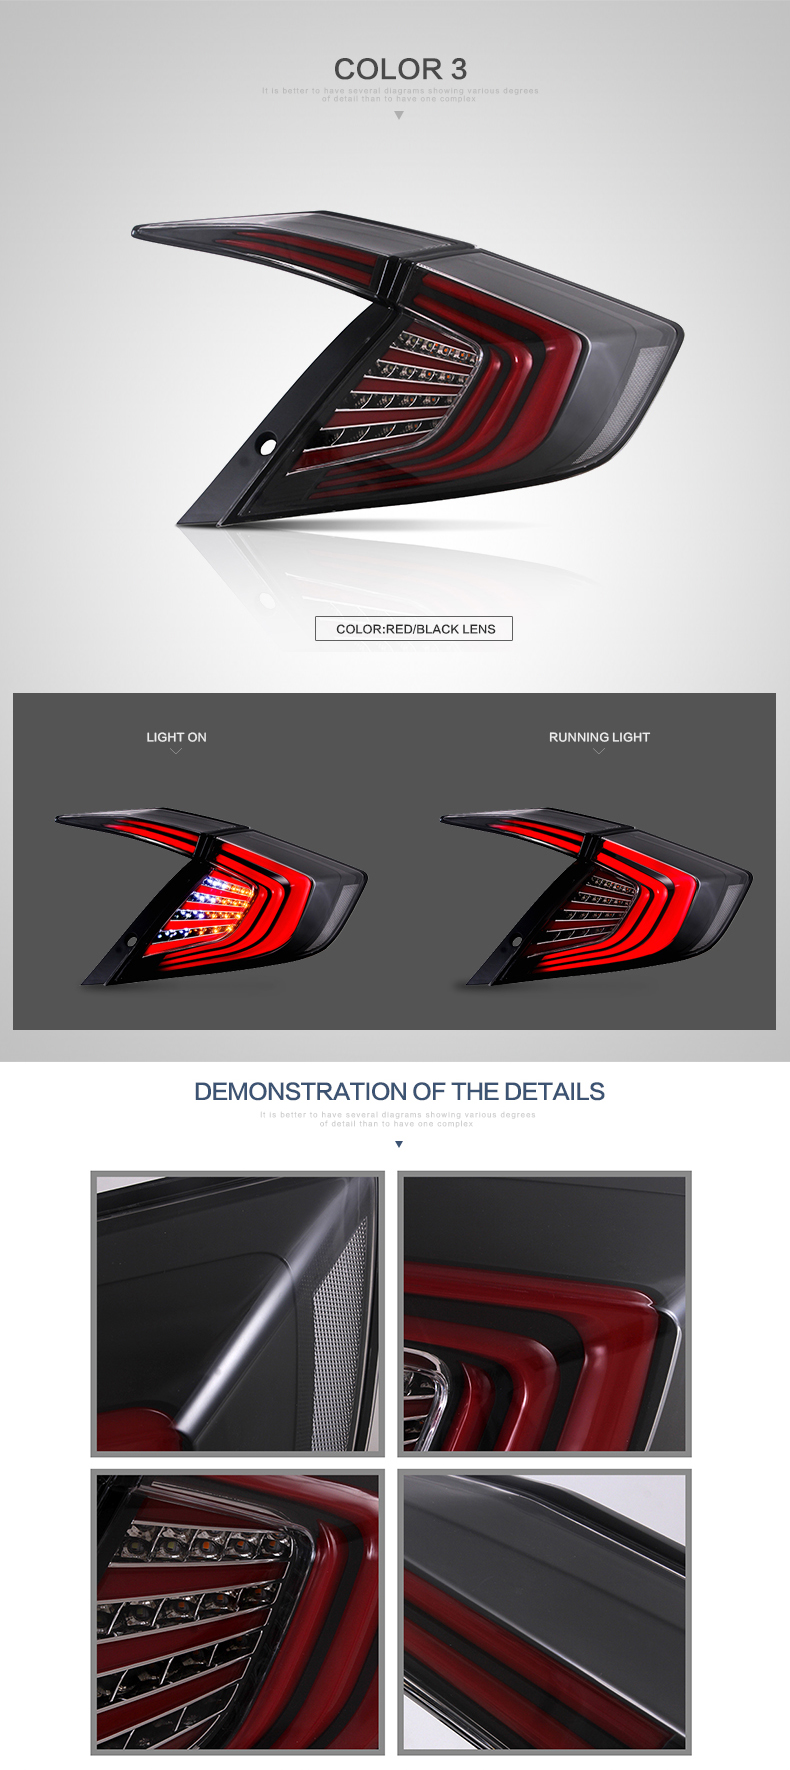 VLAND Car light 2016-2017 taillights,vland factory tail lights new system led rear lamp for honda civic